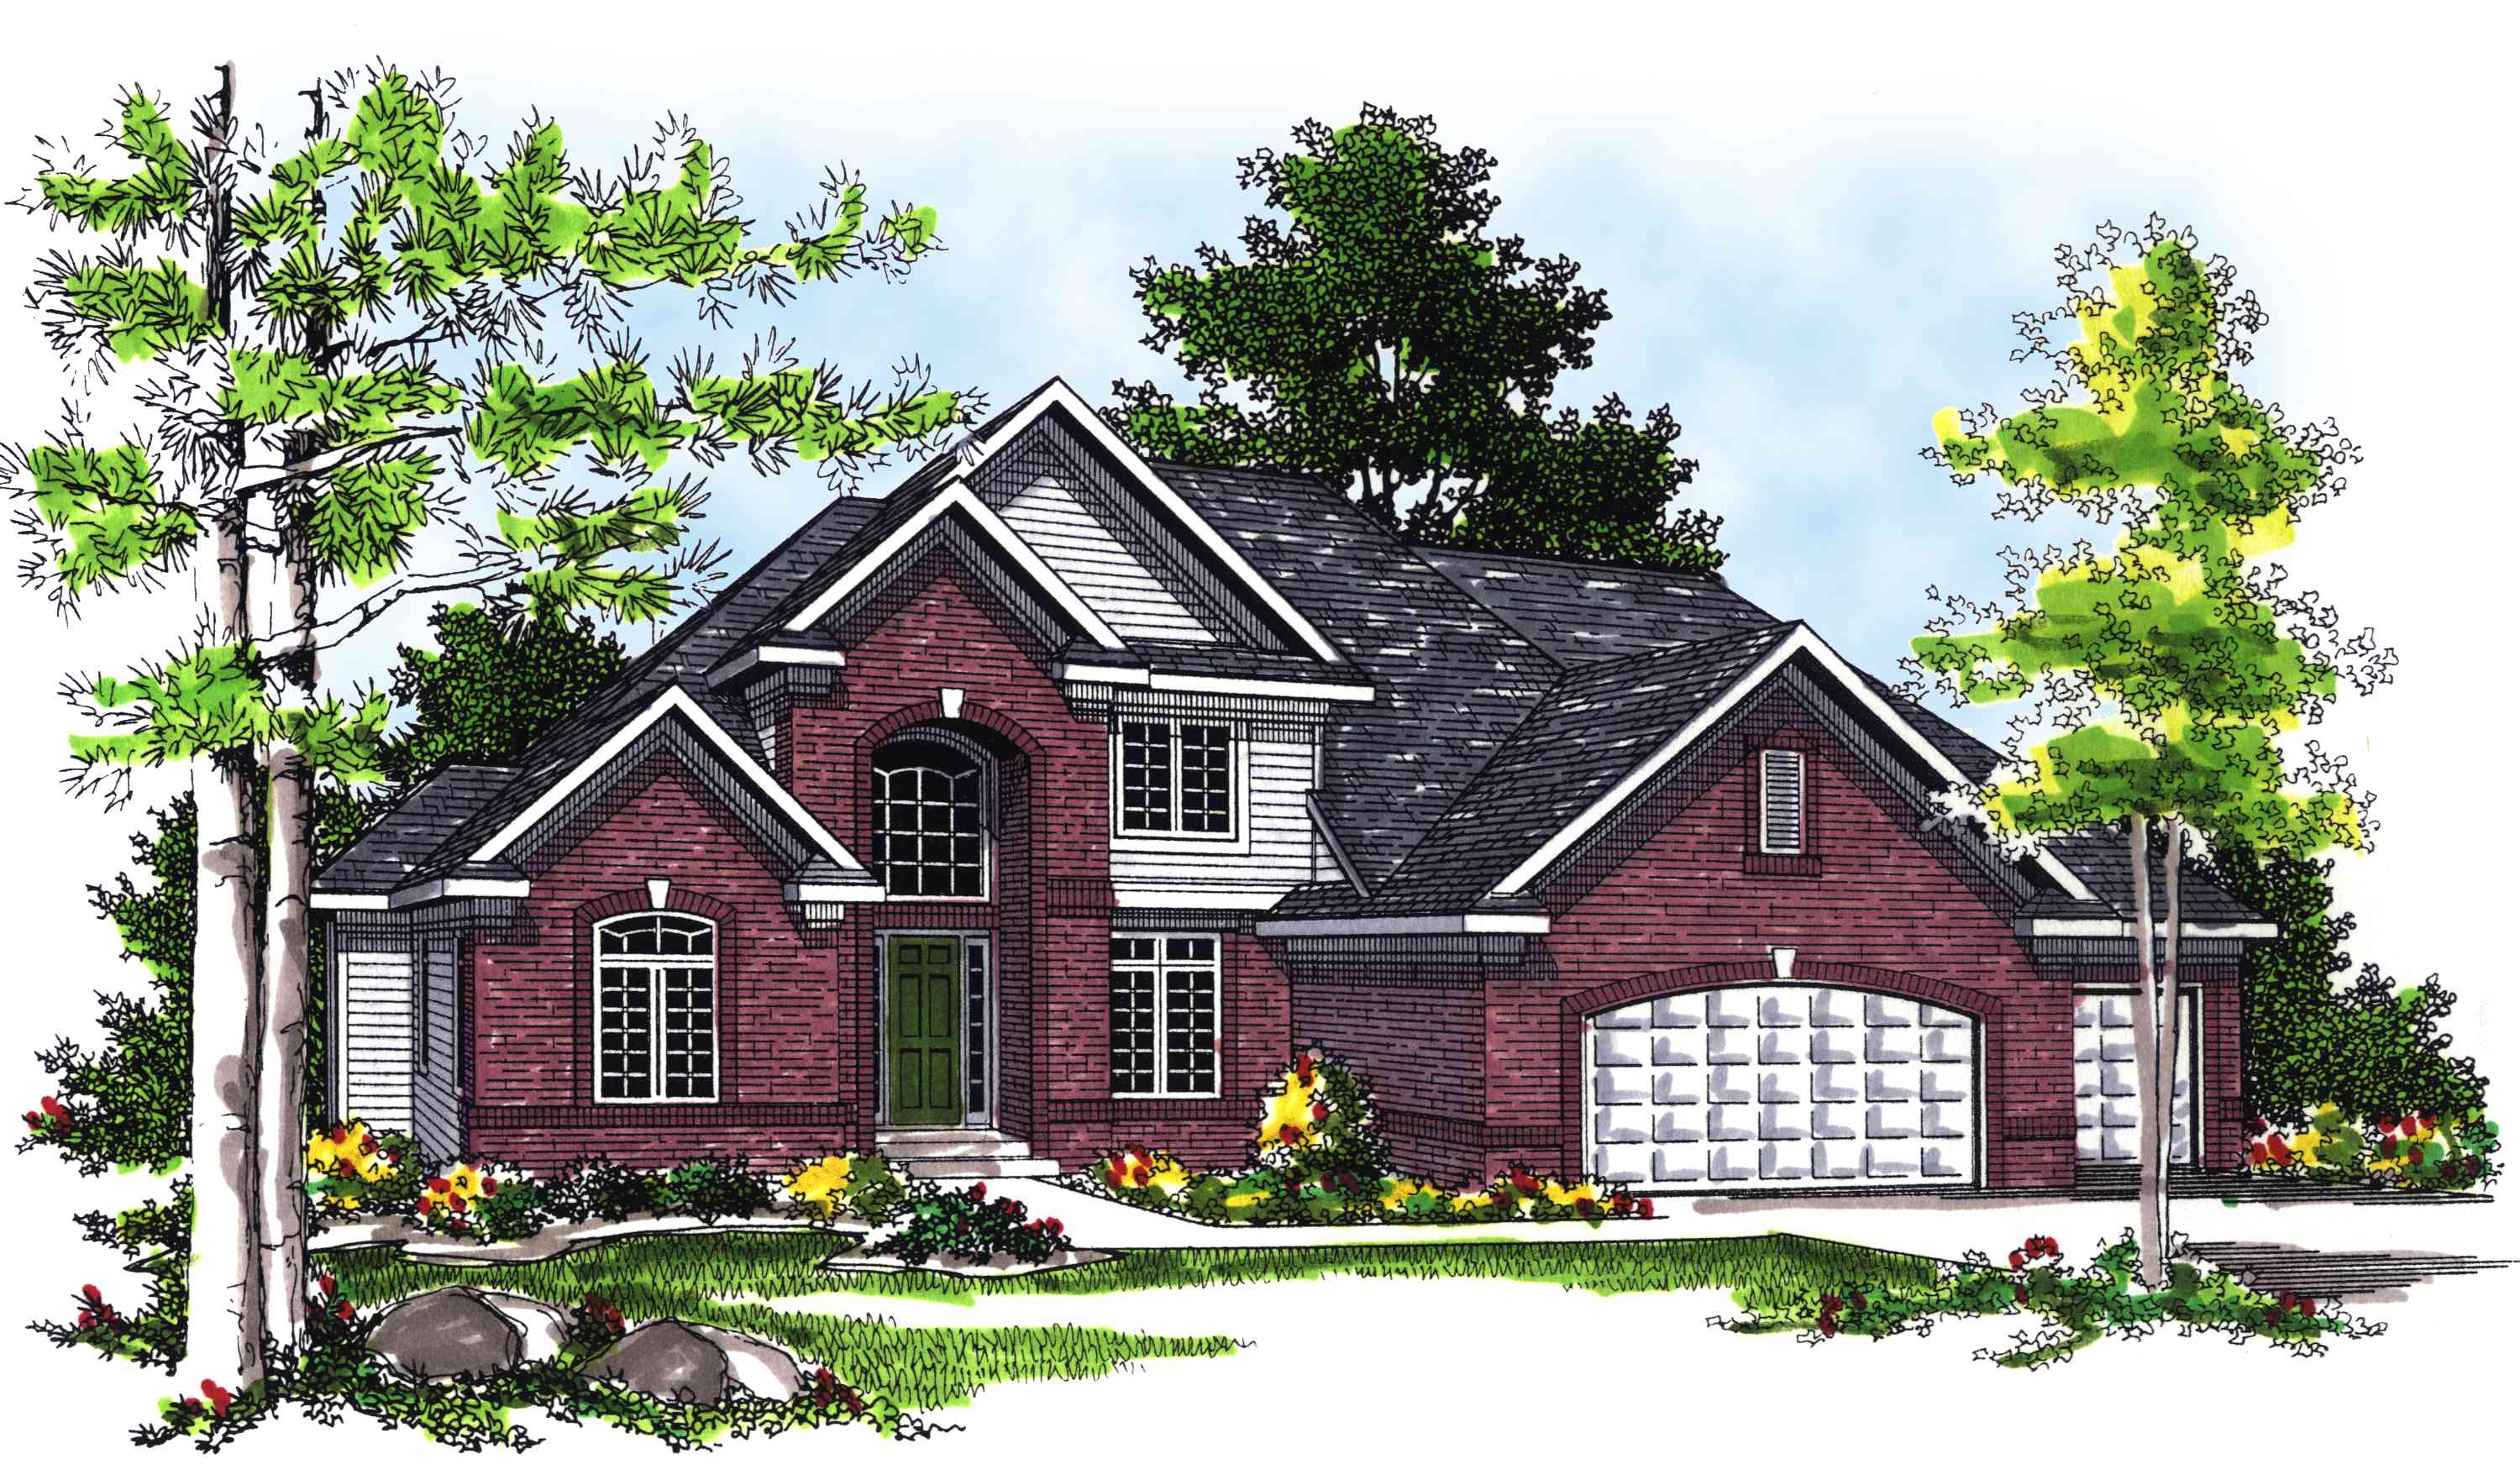 2 story 4 bedroom house plan with sunroom 89497ah for House plans with sunroom